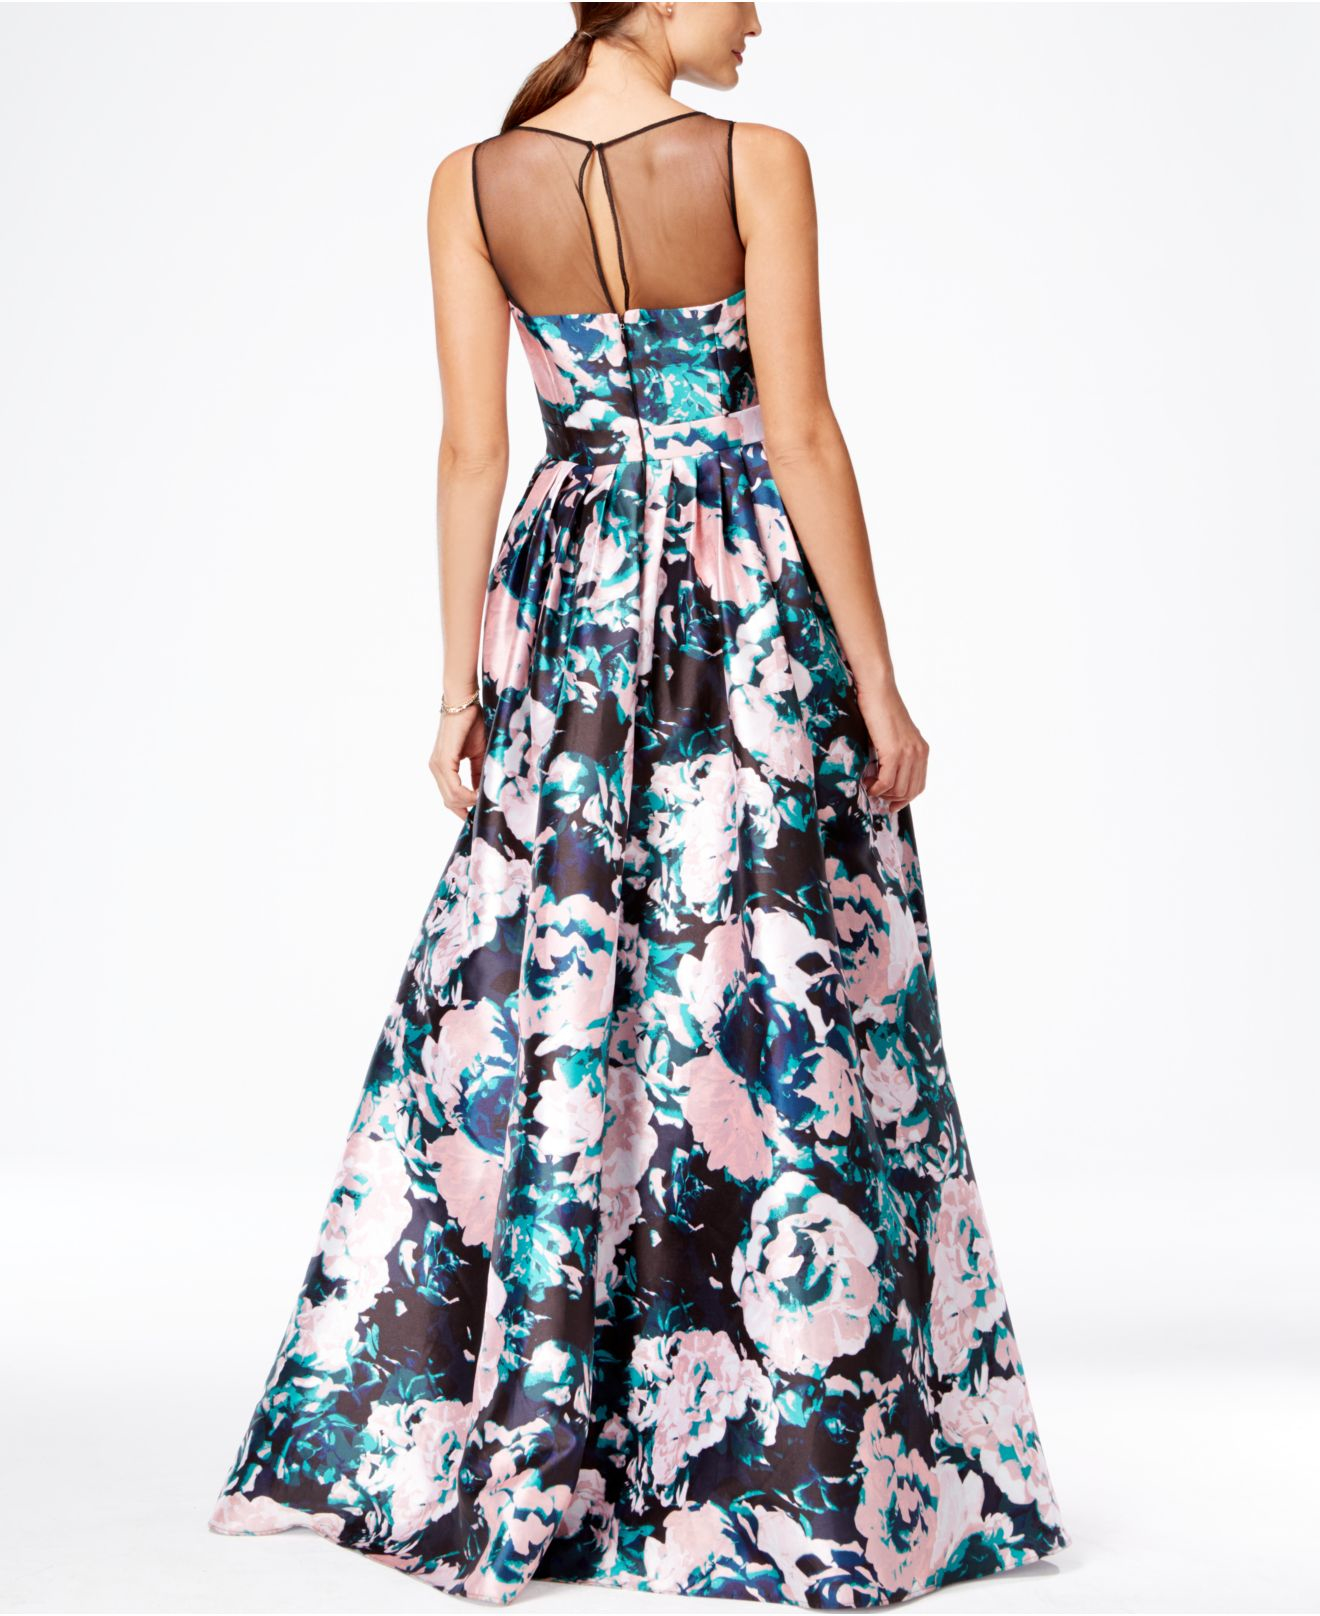 Lyst - Adrianna Papell Floral Fit And Flare Dress